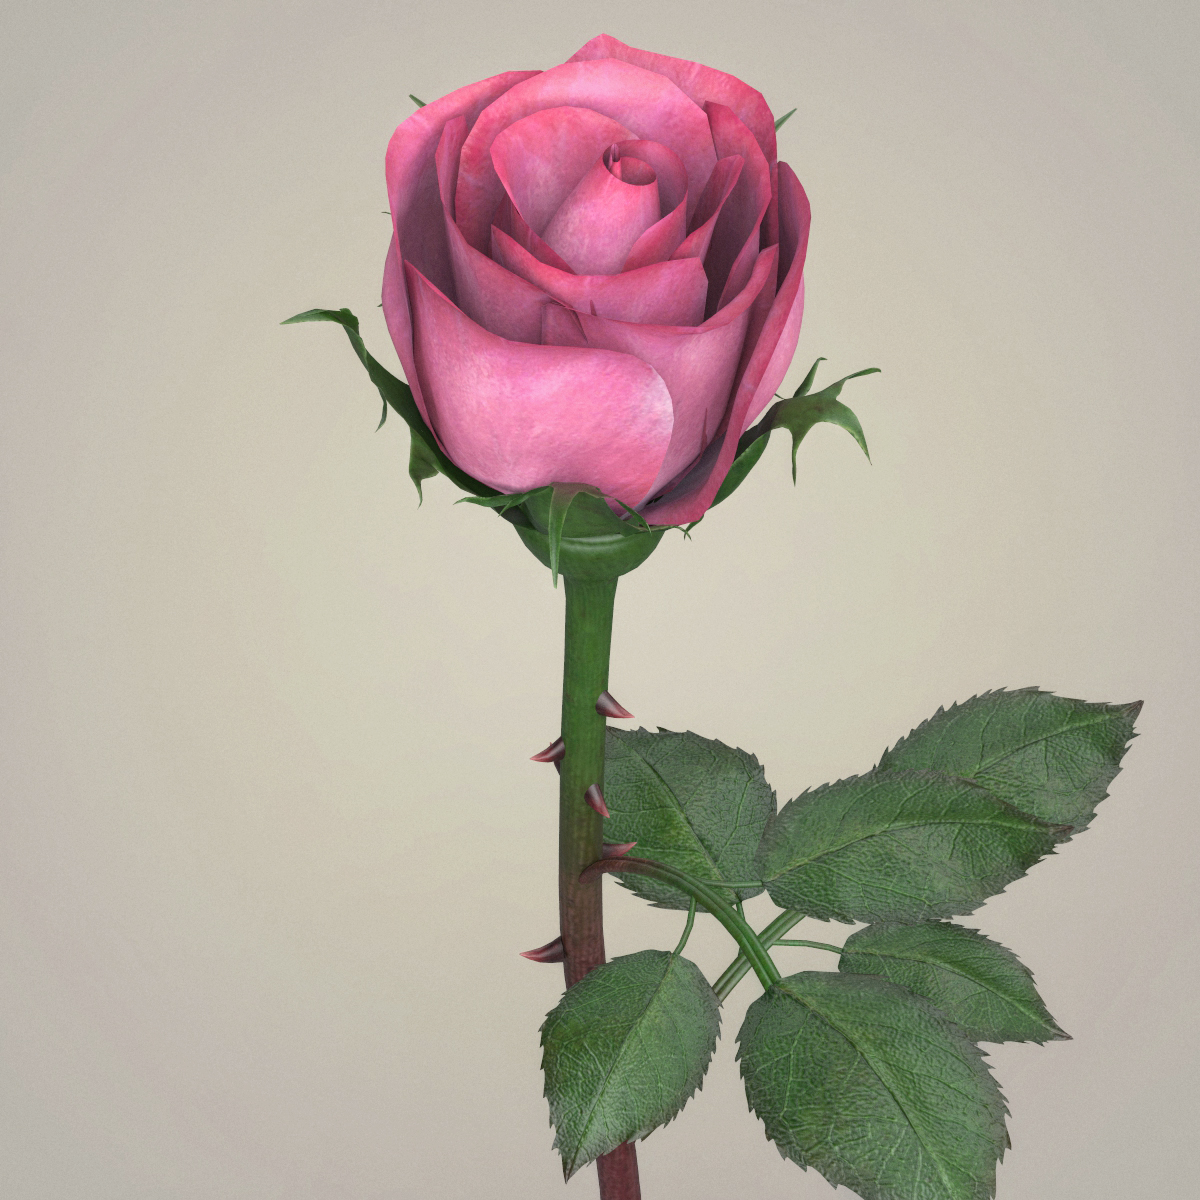 rose flower collection 3d model max fbx c4d ma mb obj 252760